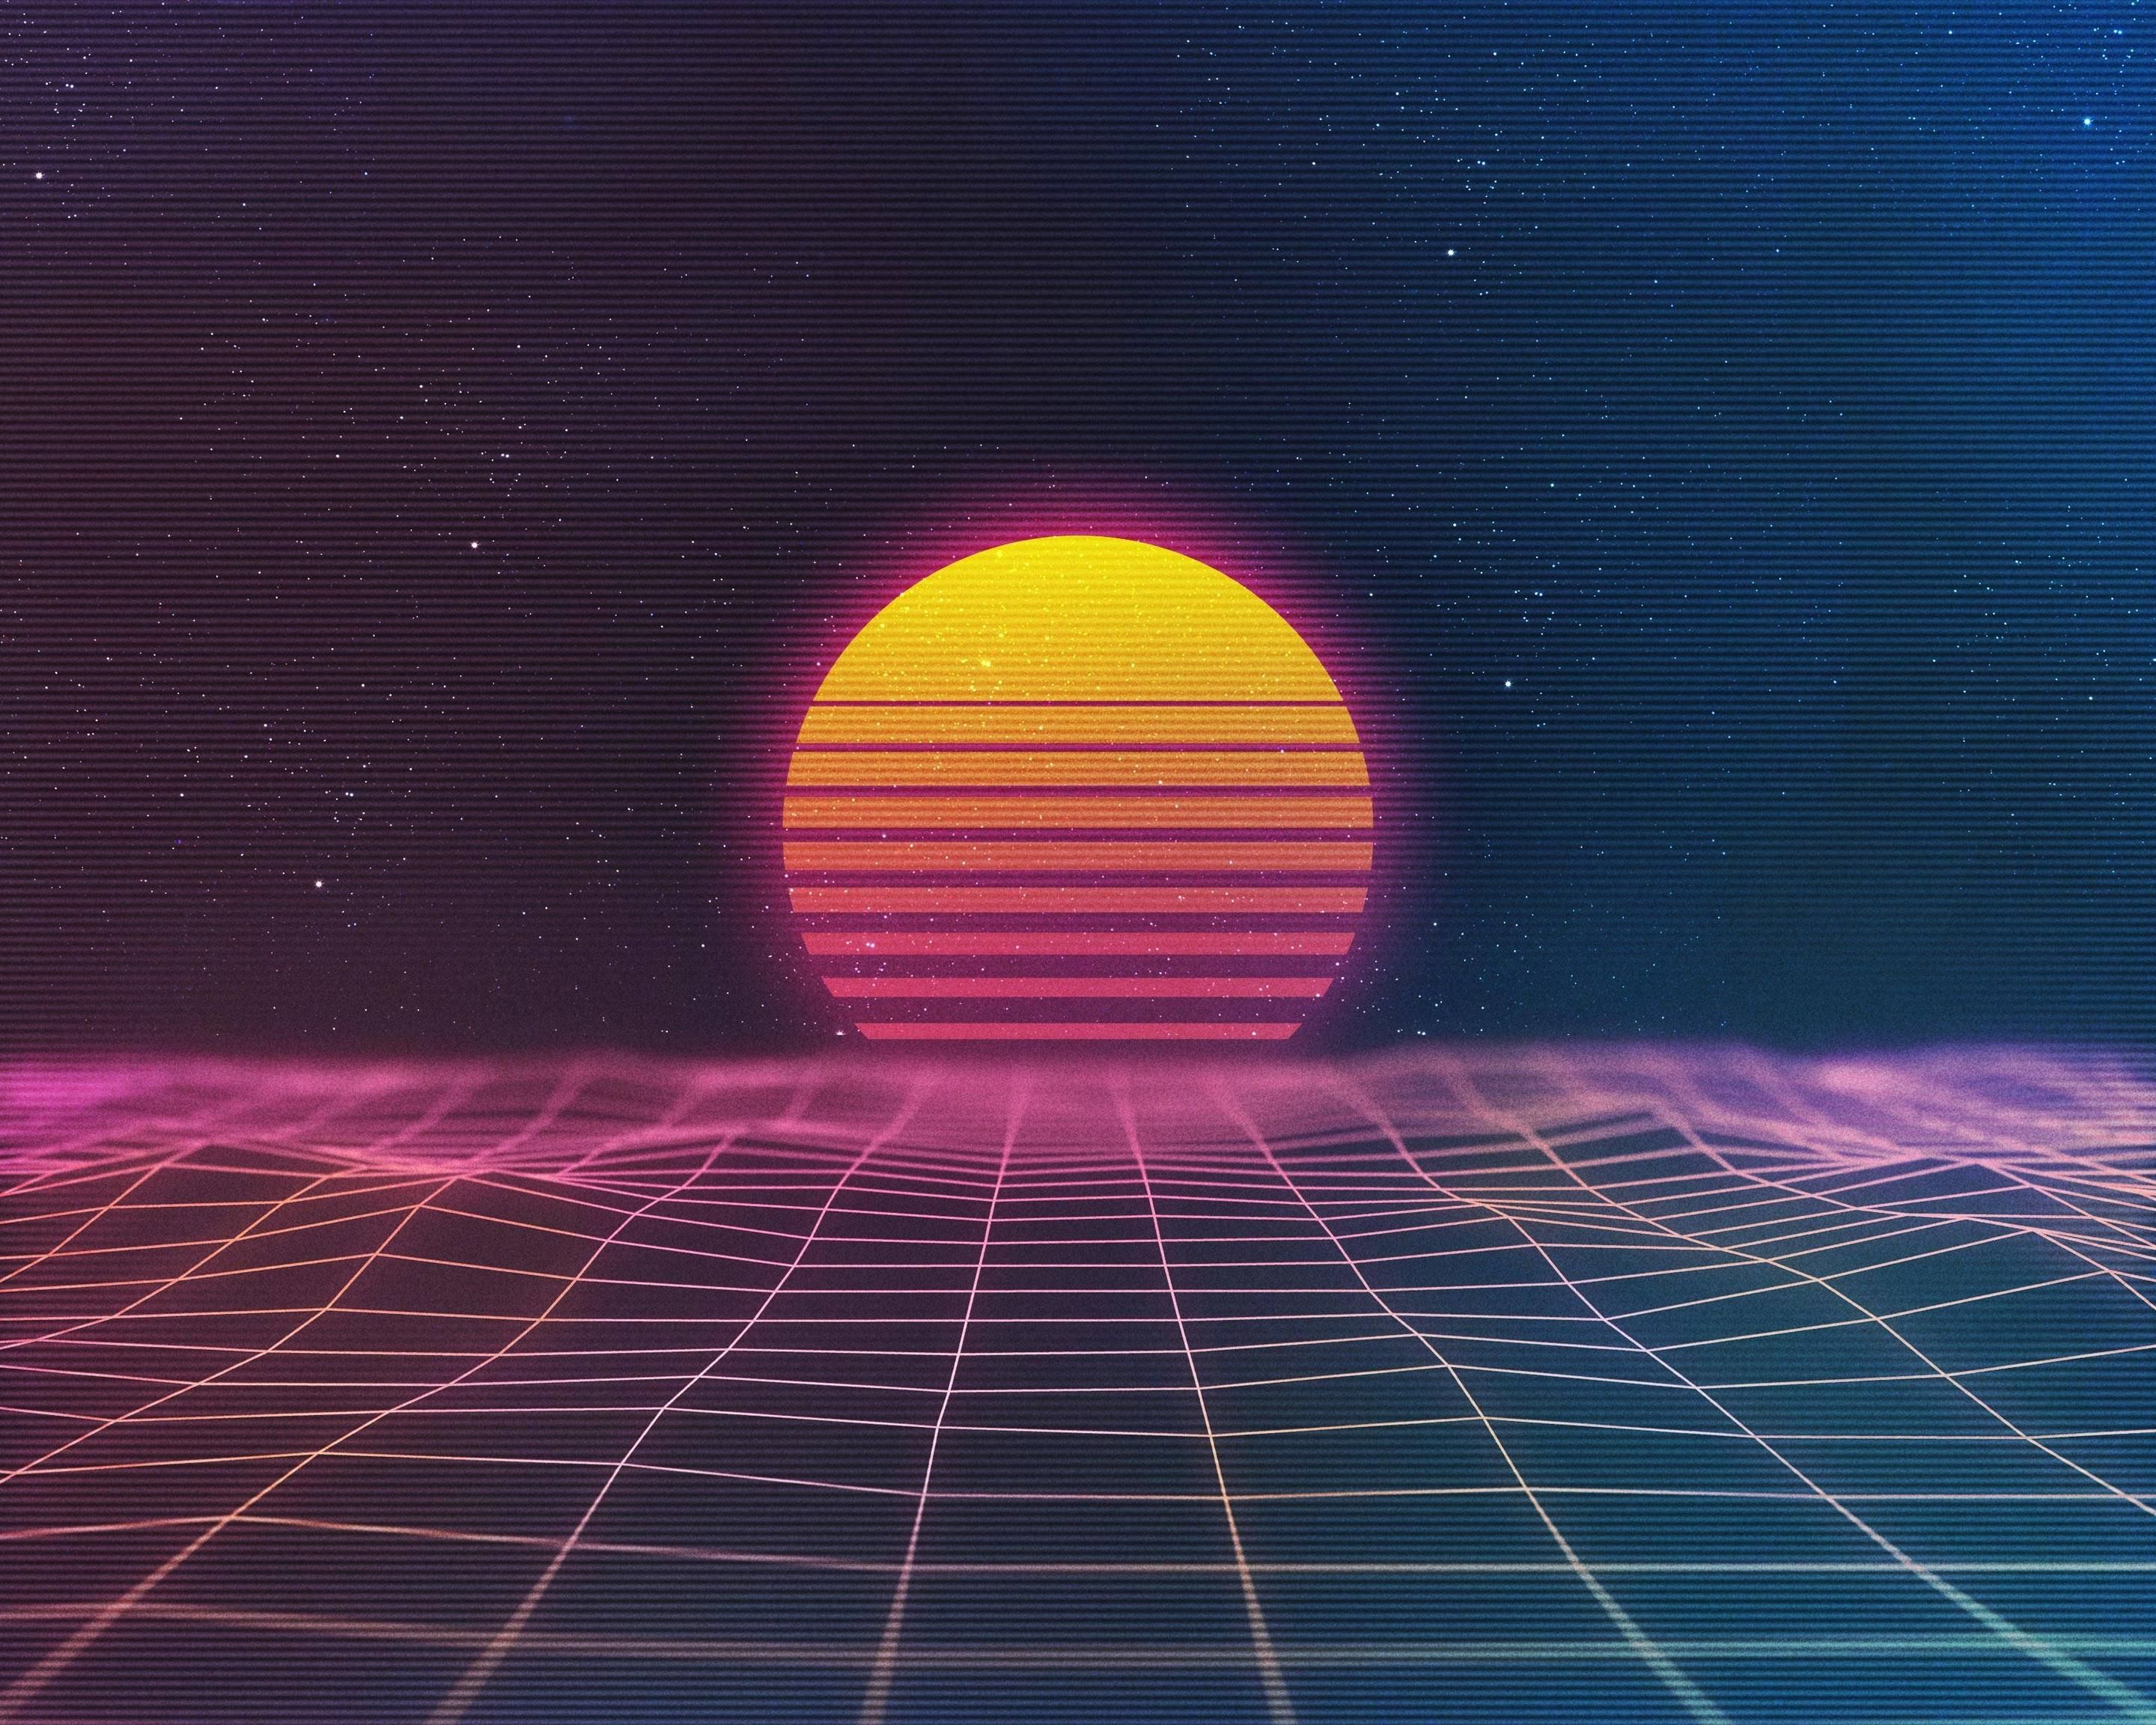 Awesome Sunset Retro Wave 3200x2560 Papel De Parede Vaporwave